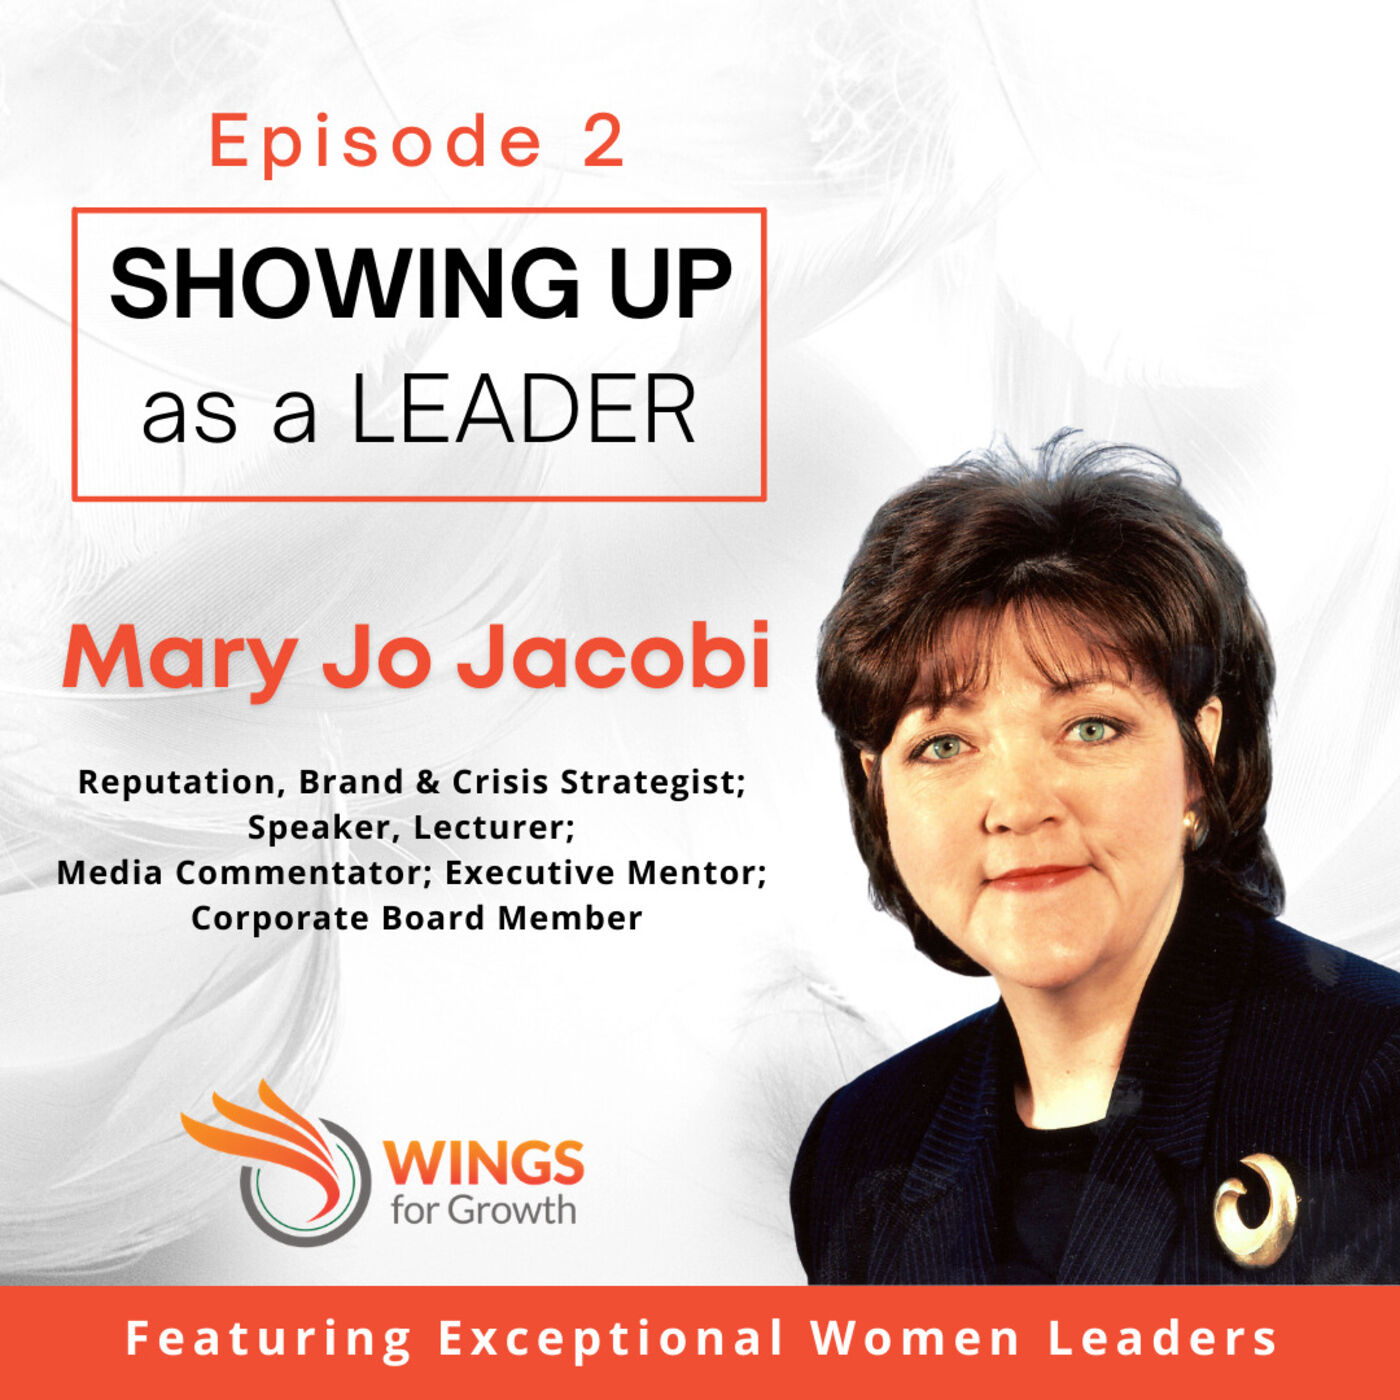 Ep.2 Mary Jo Jacobi, Reputation, brand & crisis strategist; speaker, lecturer; media commentator; executive mentor; corporate board member